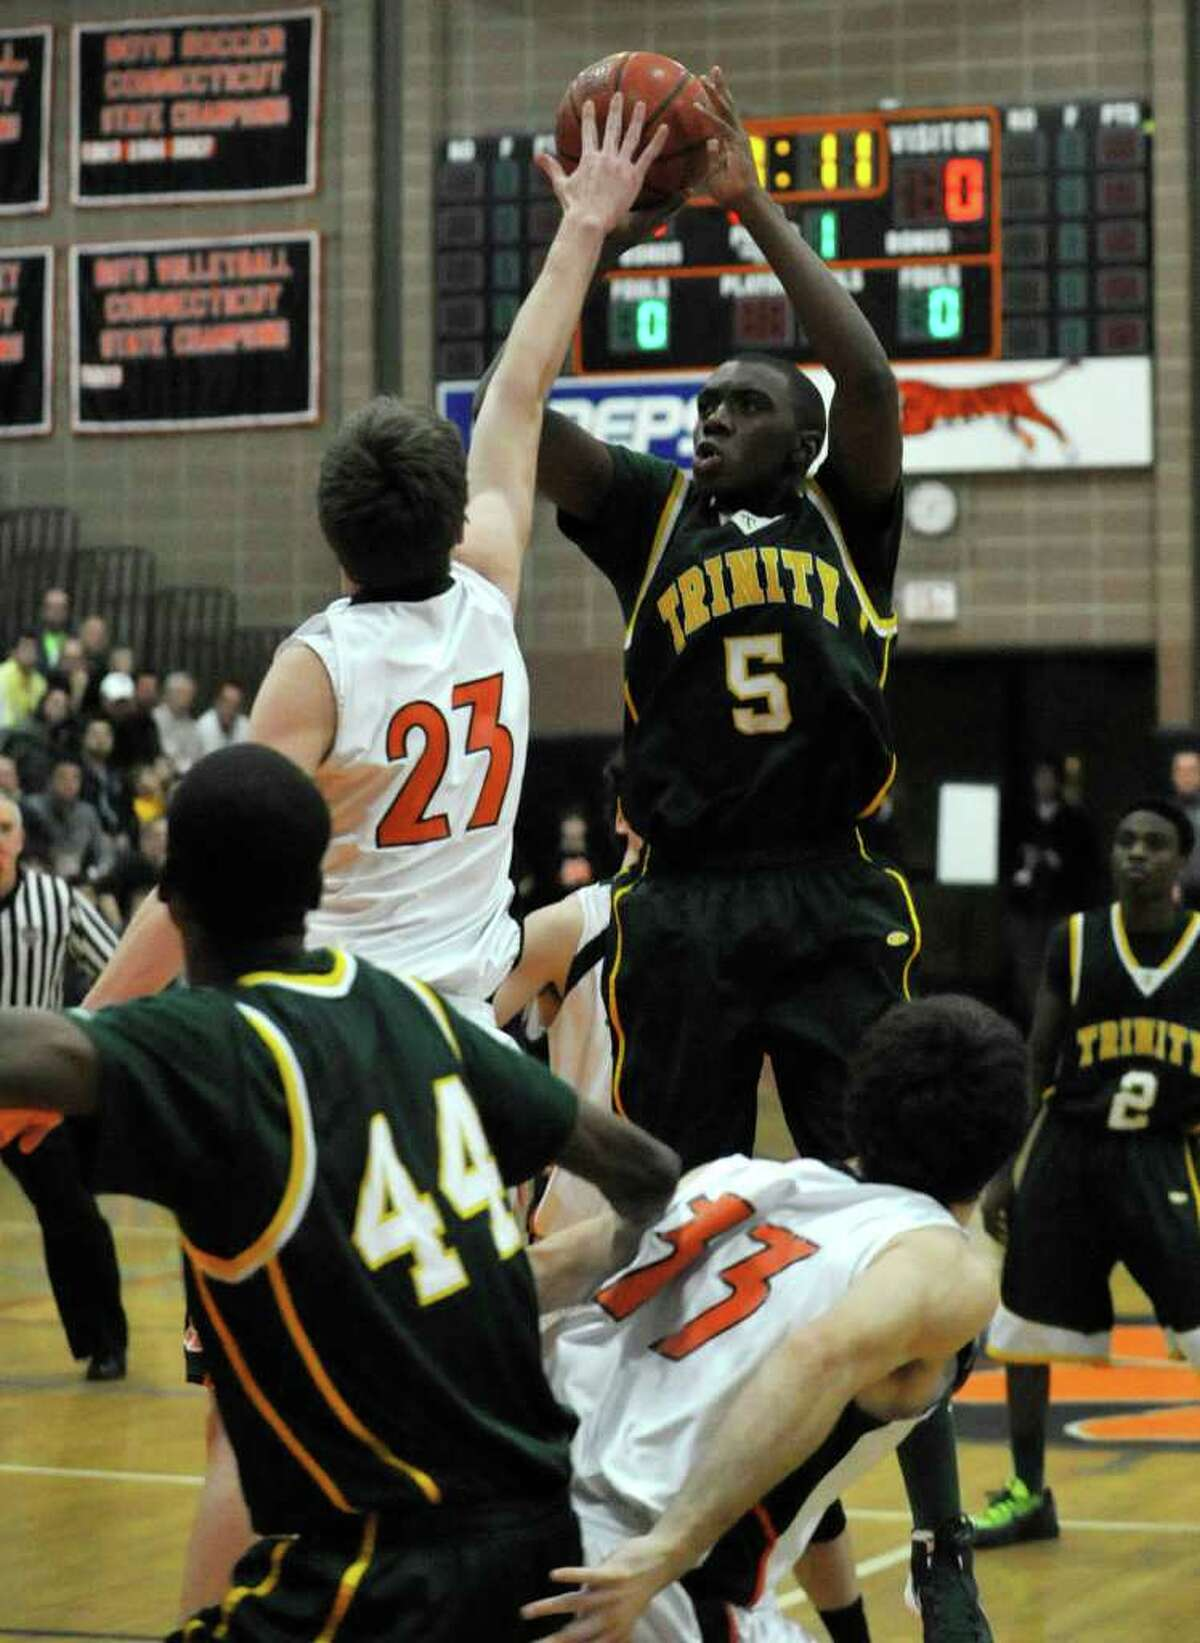 Trinity's Brandon Wheeler tries to shoot over Ridgefield's Patrick Racy during their game at Ridgefield High School on Tuesday, Jan. 24, 2012.